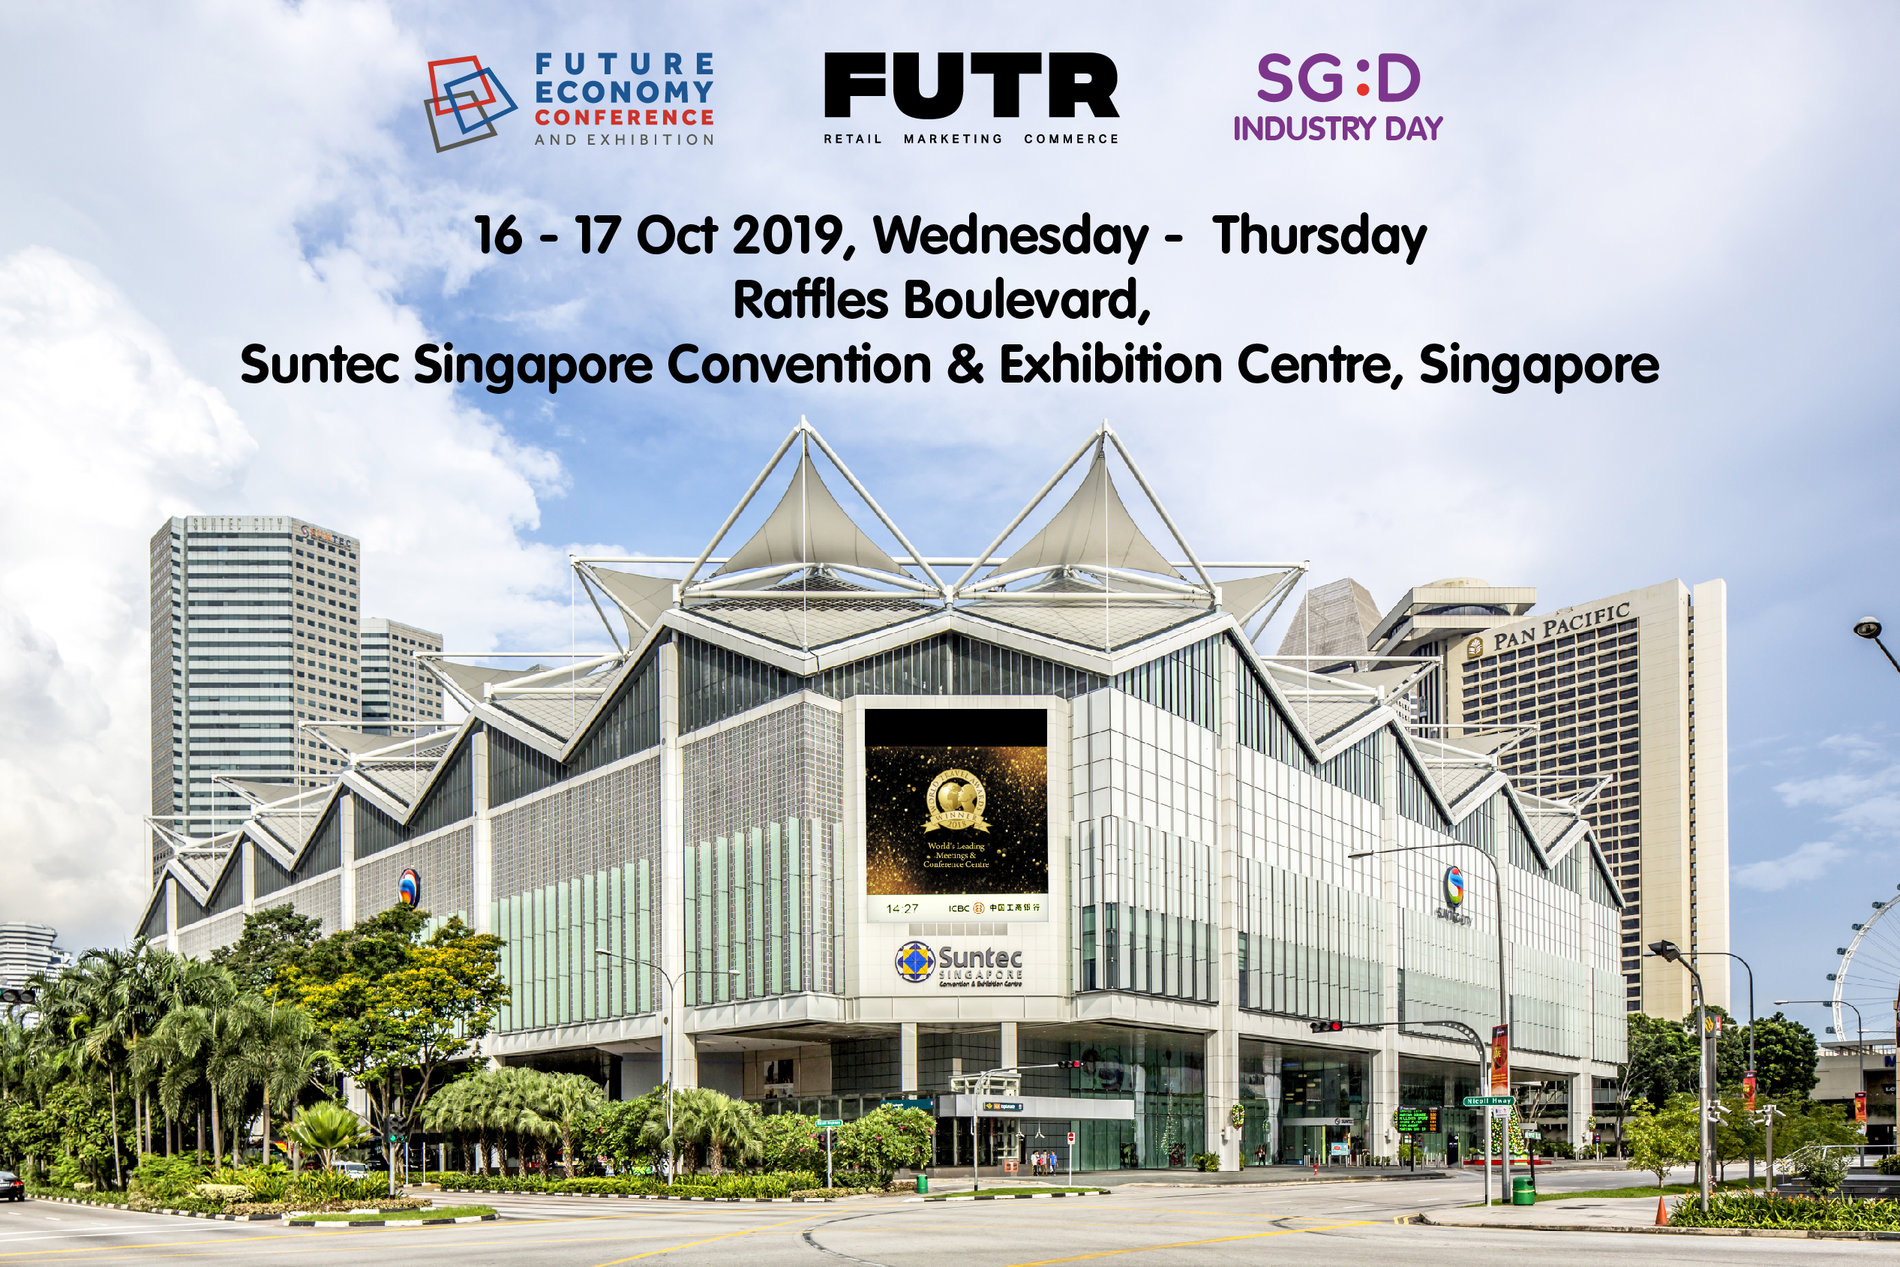 Future Economy Conference and Exhibition | SG:D Industry Day | FUTR 2019 Registration Banner Image